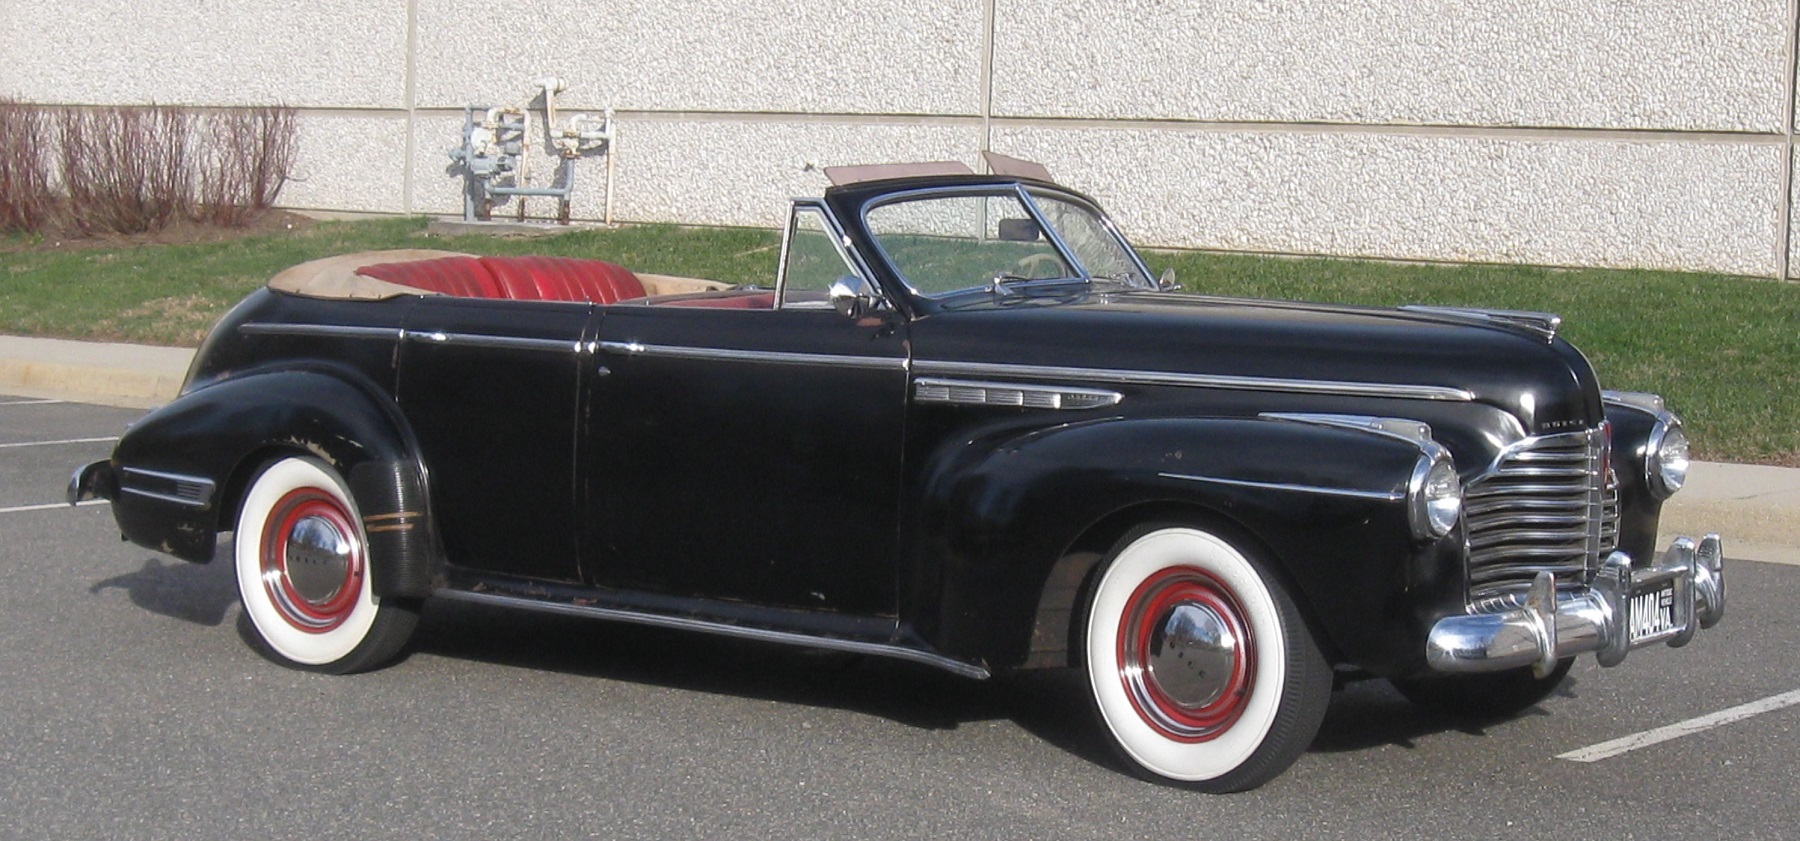 A Convertible to Restore: 1941 Buick Super Phaeton - Classic ...